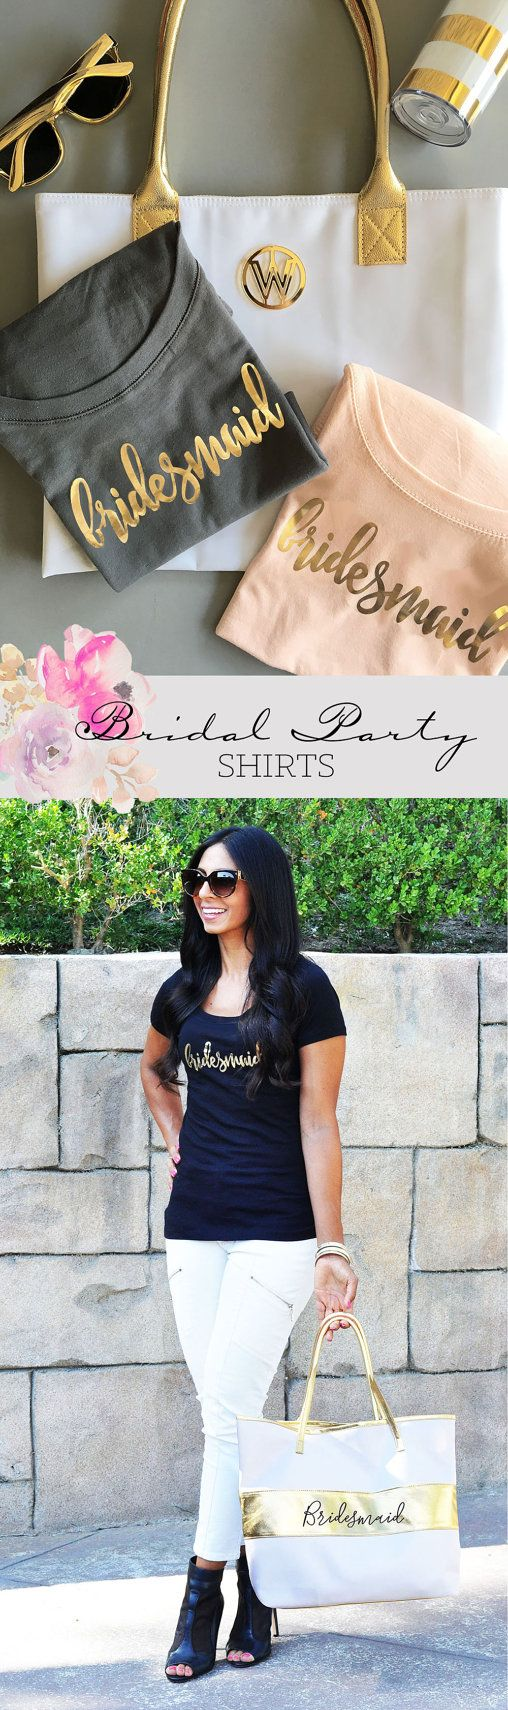 Bridal Party Shirts make the perfect gift for your bridesmaids and maid of honor - give them to your friends before a bachelorette party so the crew can travel in style! Each soft cotton jersey shirt has a scoop neck and printed with a bridal party title in metallic gold foil. ***DETAILS*** ____________________________________________________________________  Listing is for 1 Bridal Party Shirt in the color of your choice.  Cosmetic Bags are NOT included but can be purchased separately in…